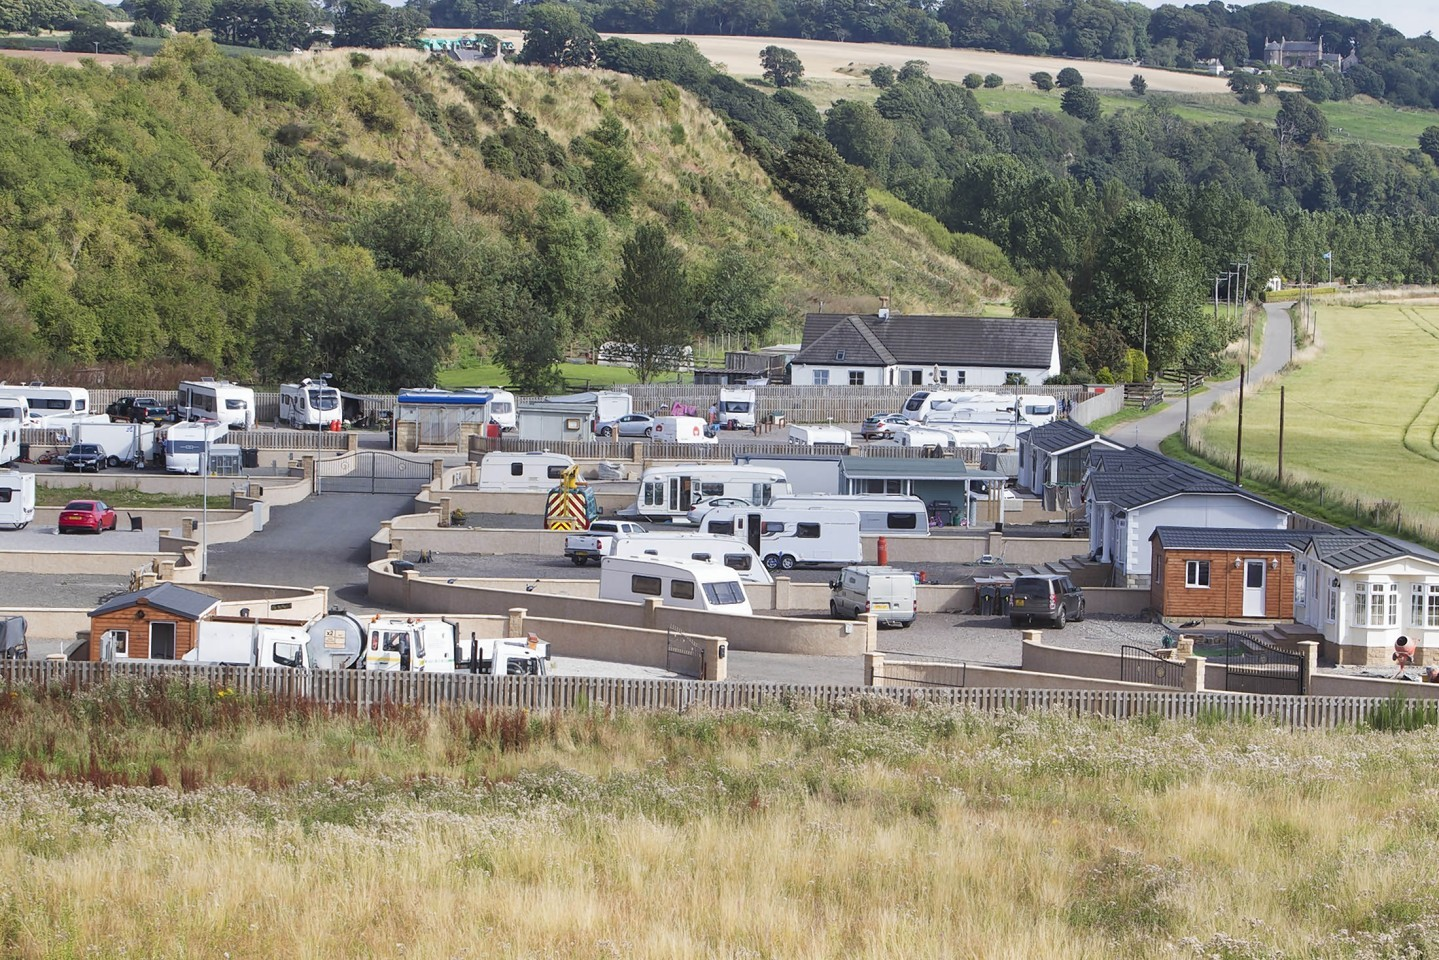 The camp's plans are being recommended for refusal